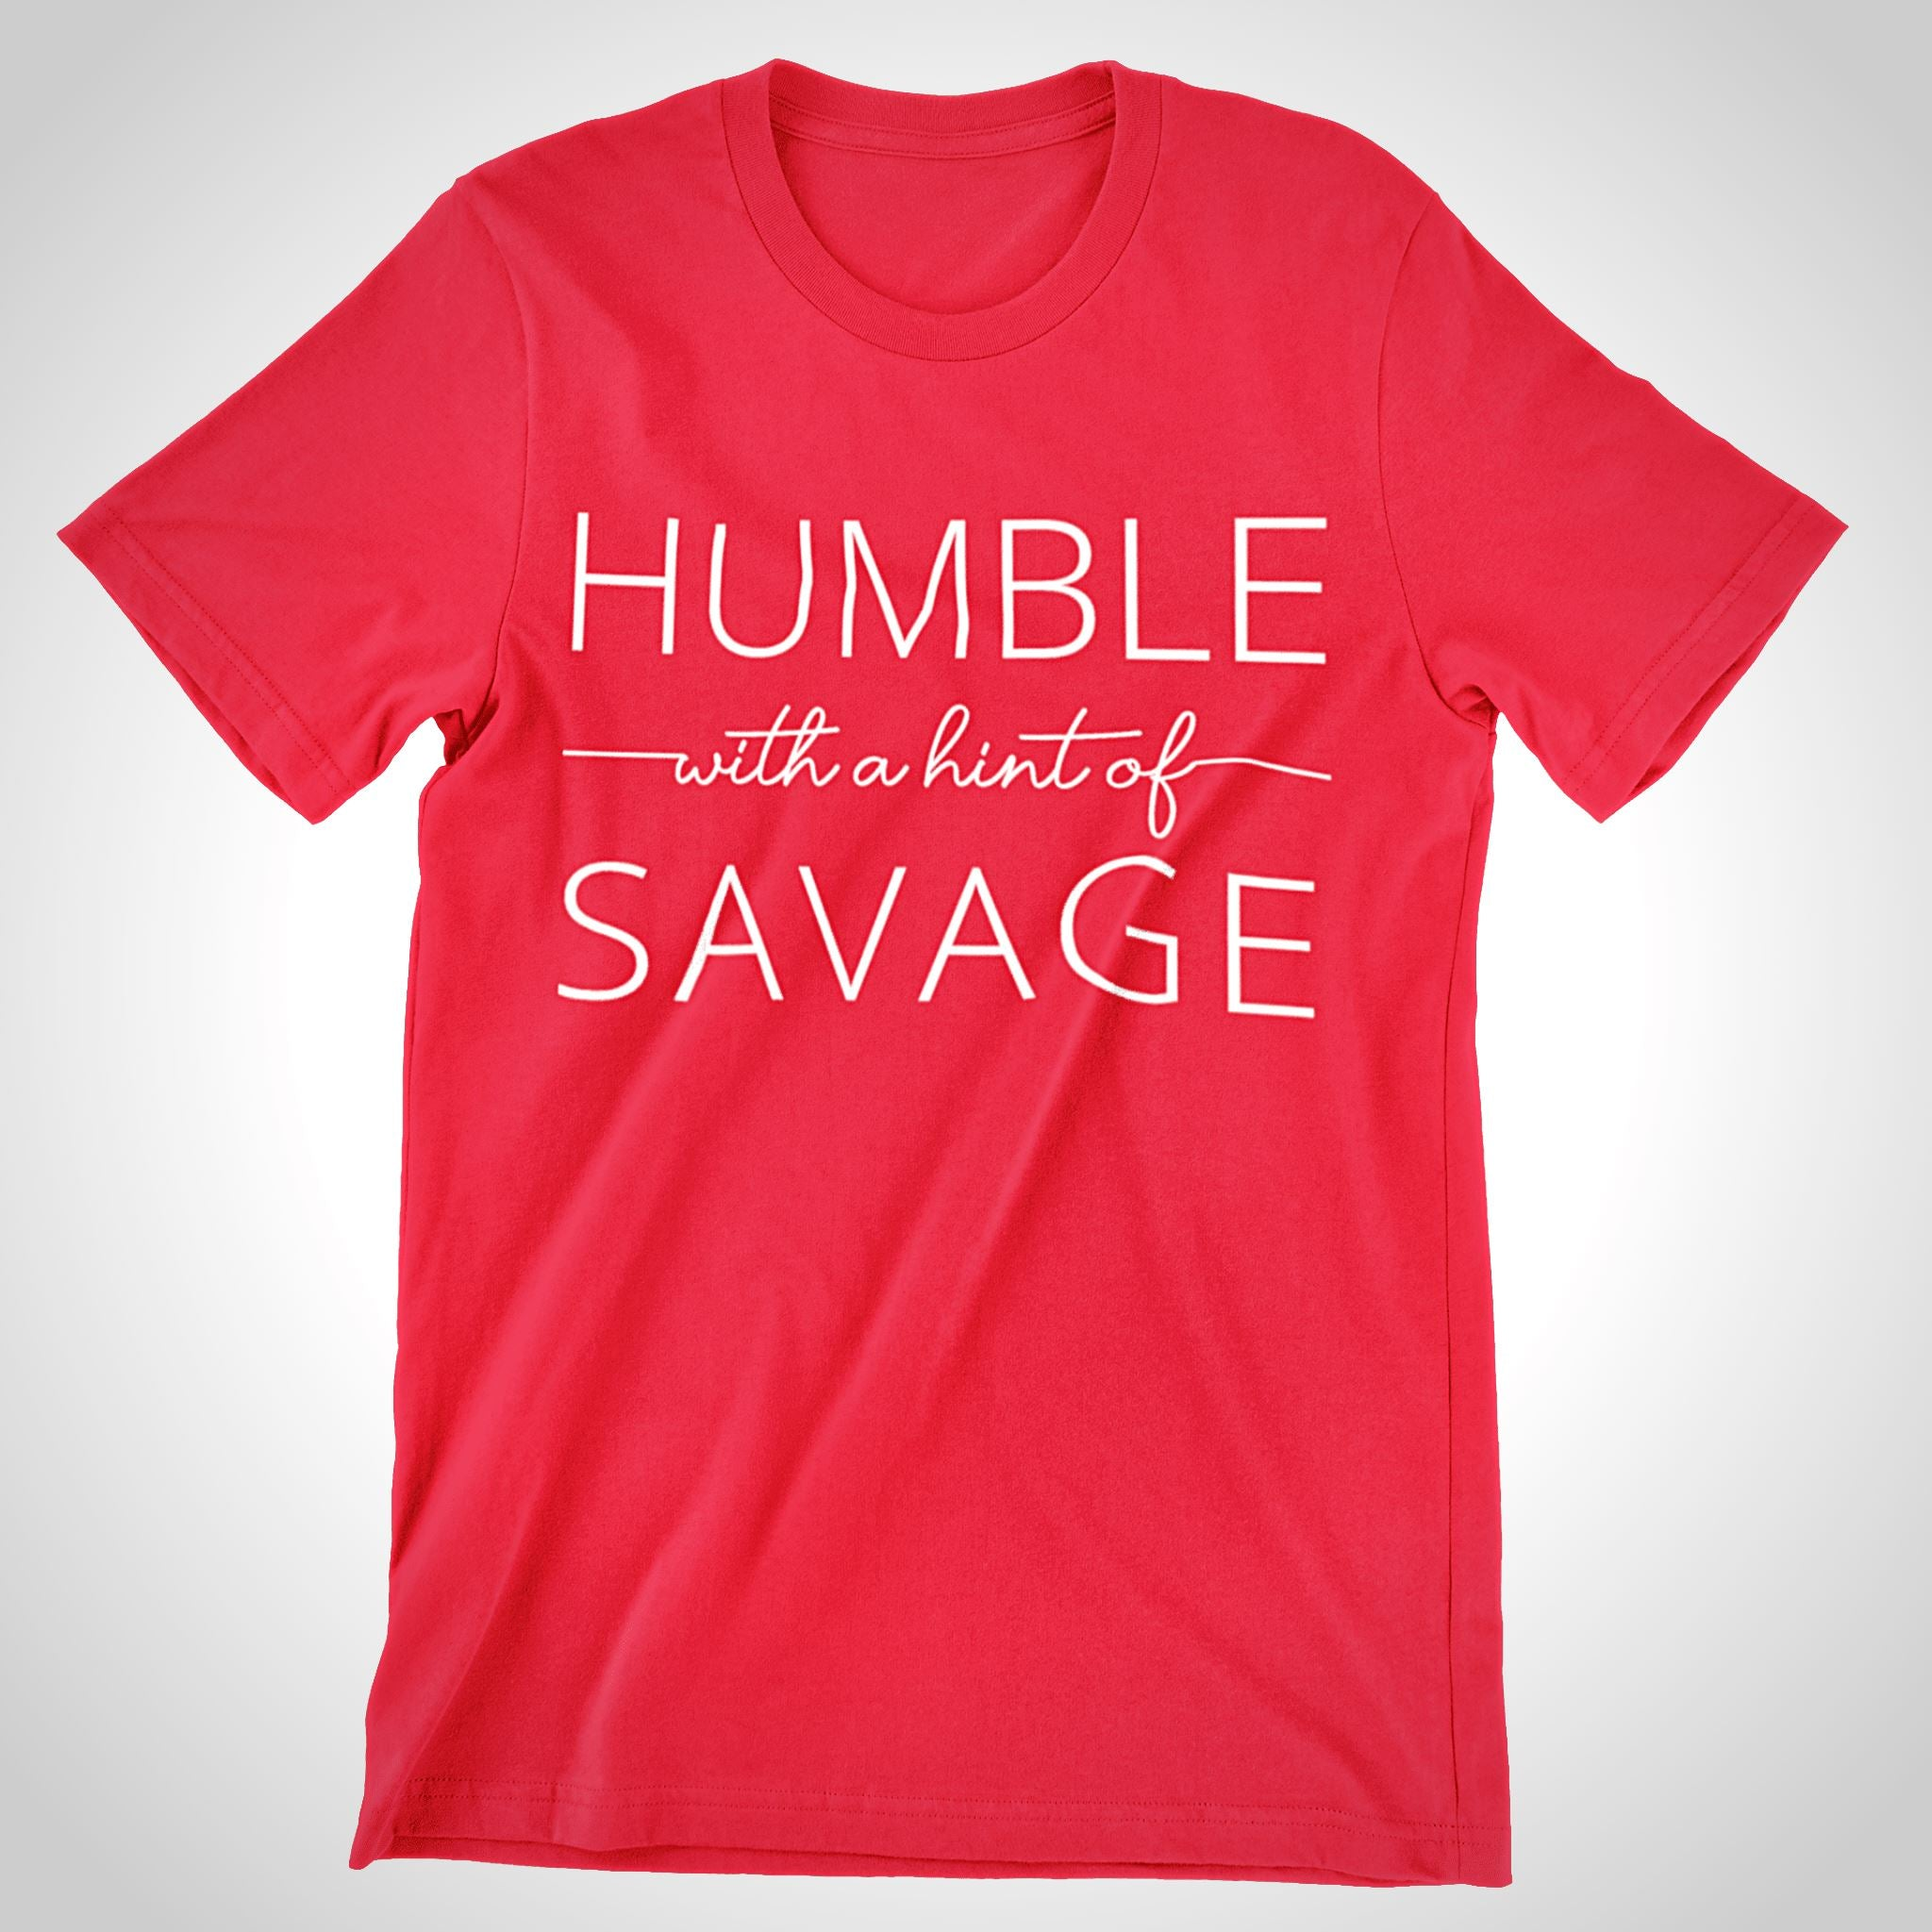 Humble With A Hint of Savage - What's Your Statement